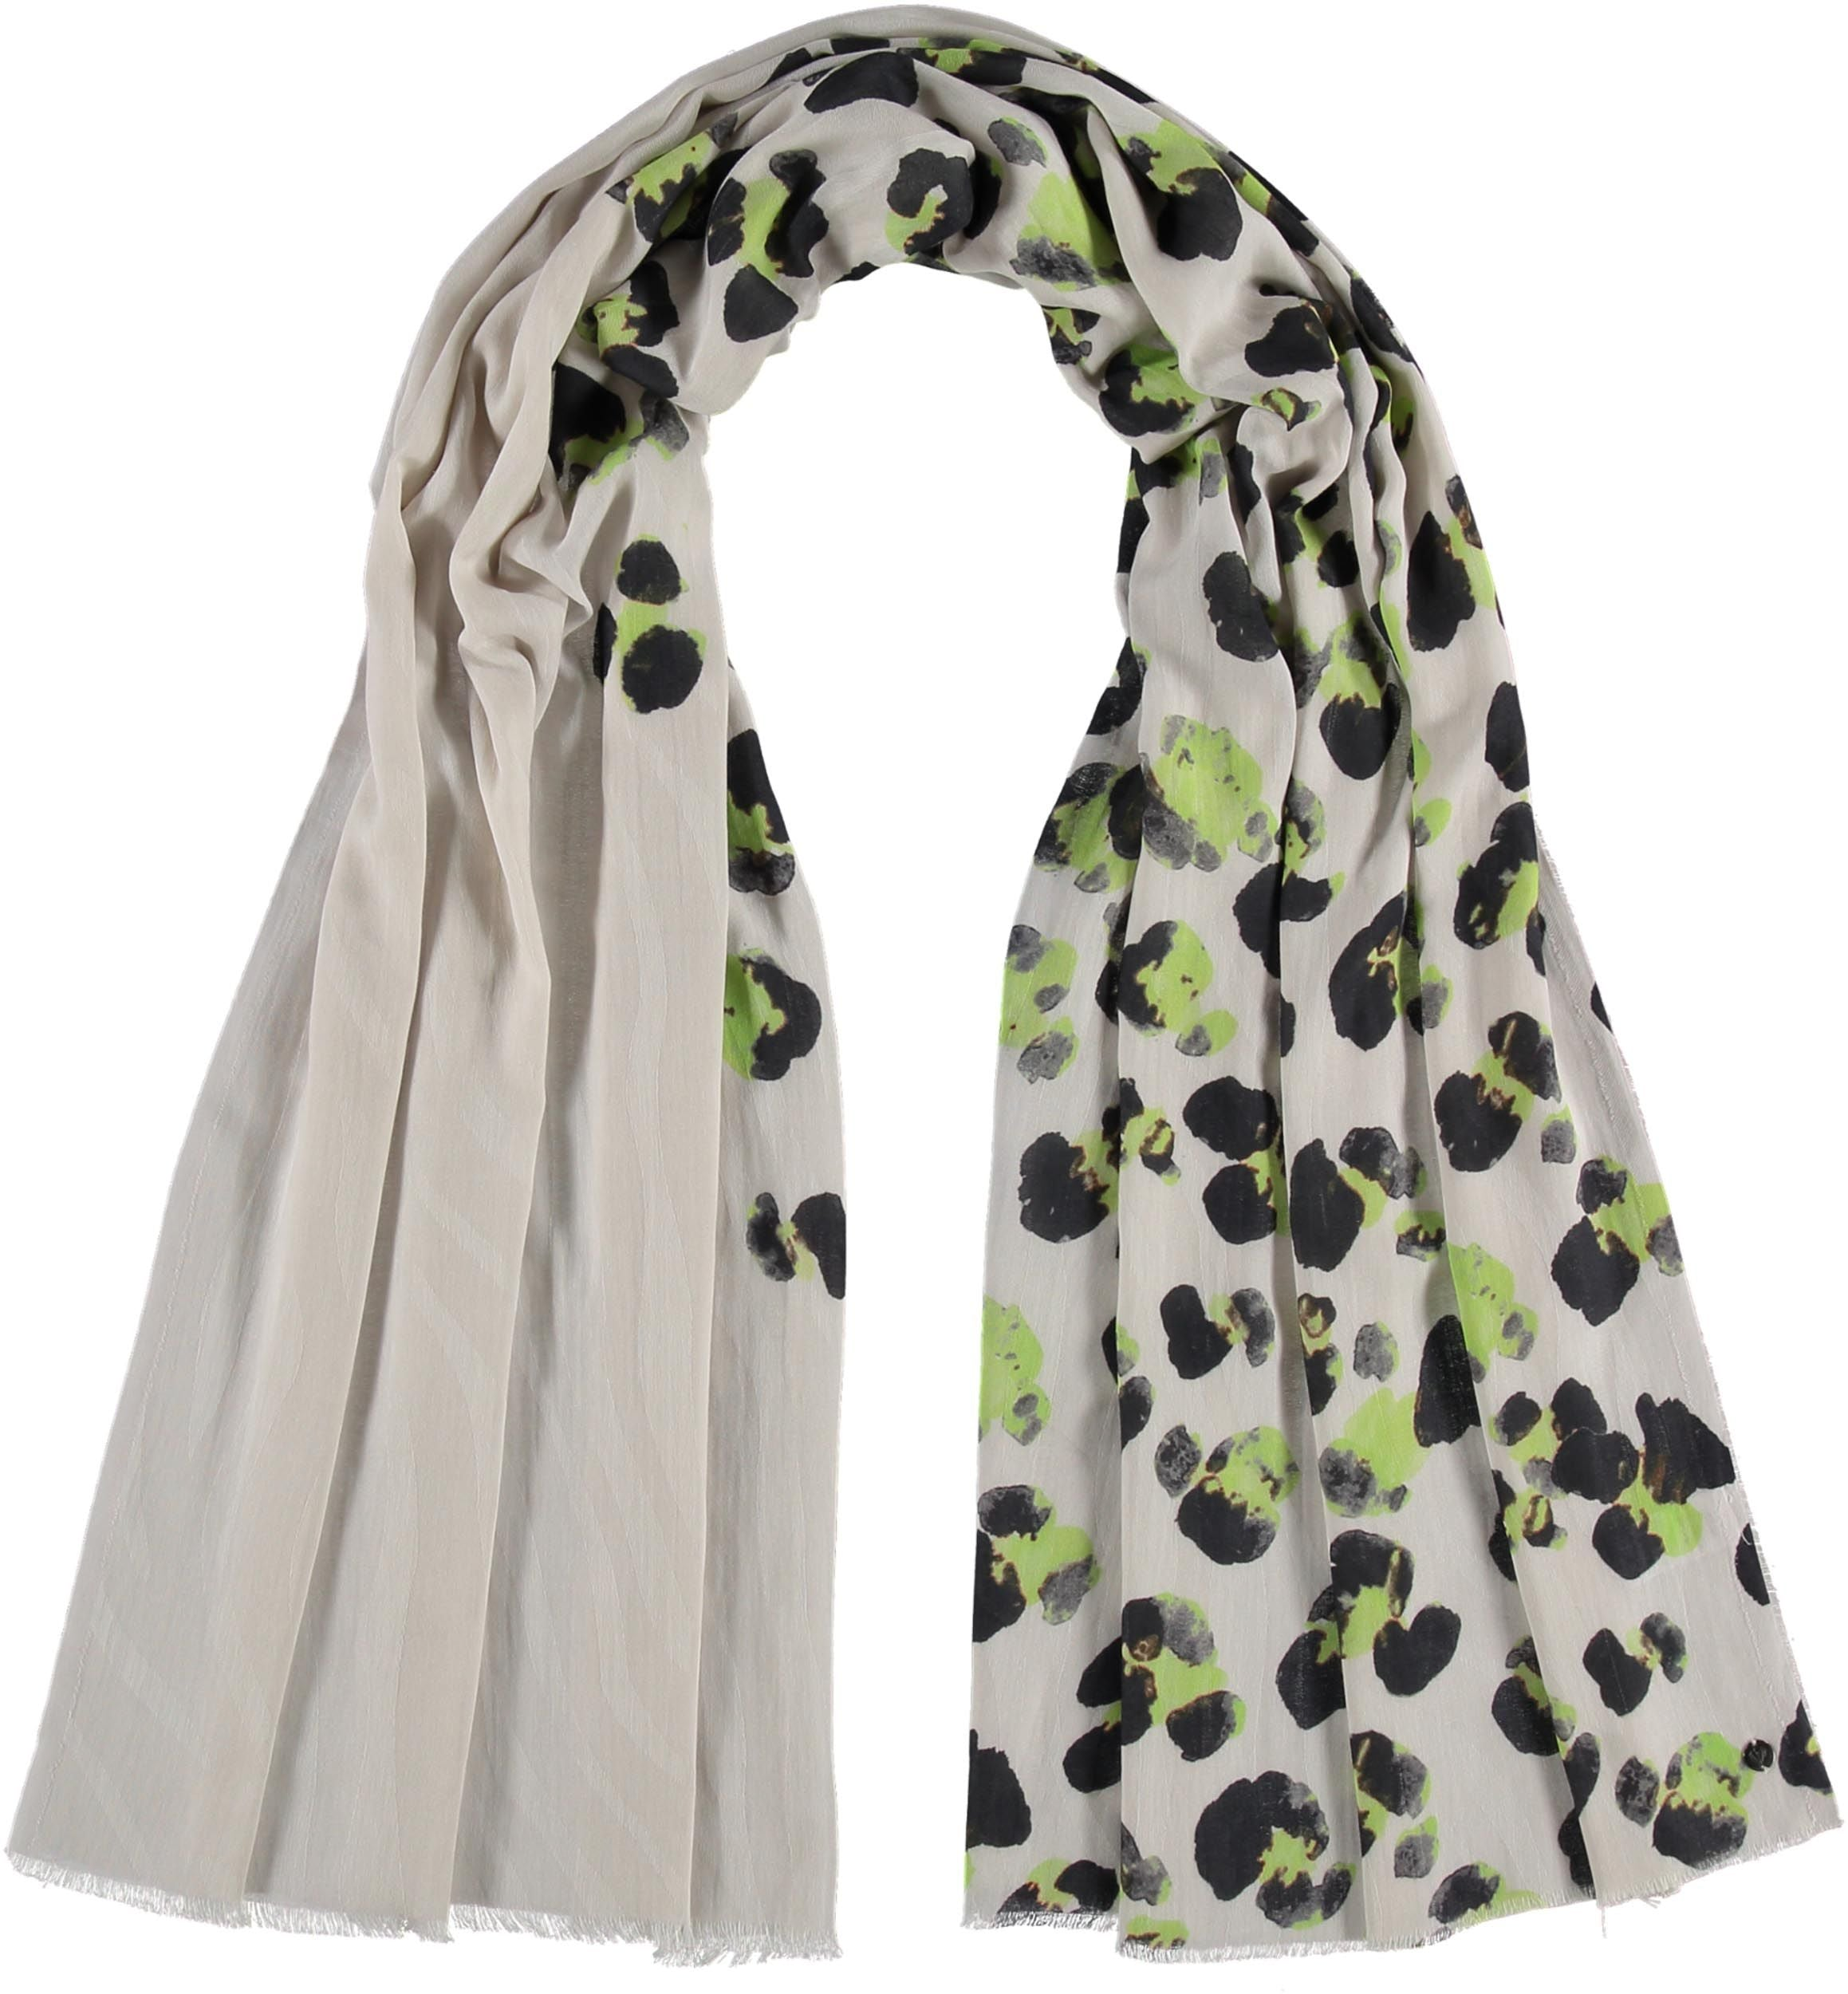 Painted Leo Cotton Print Scarf